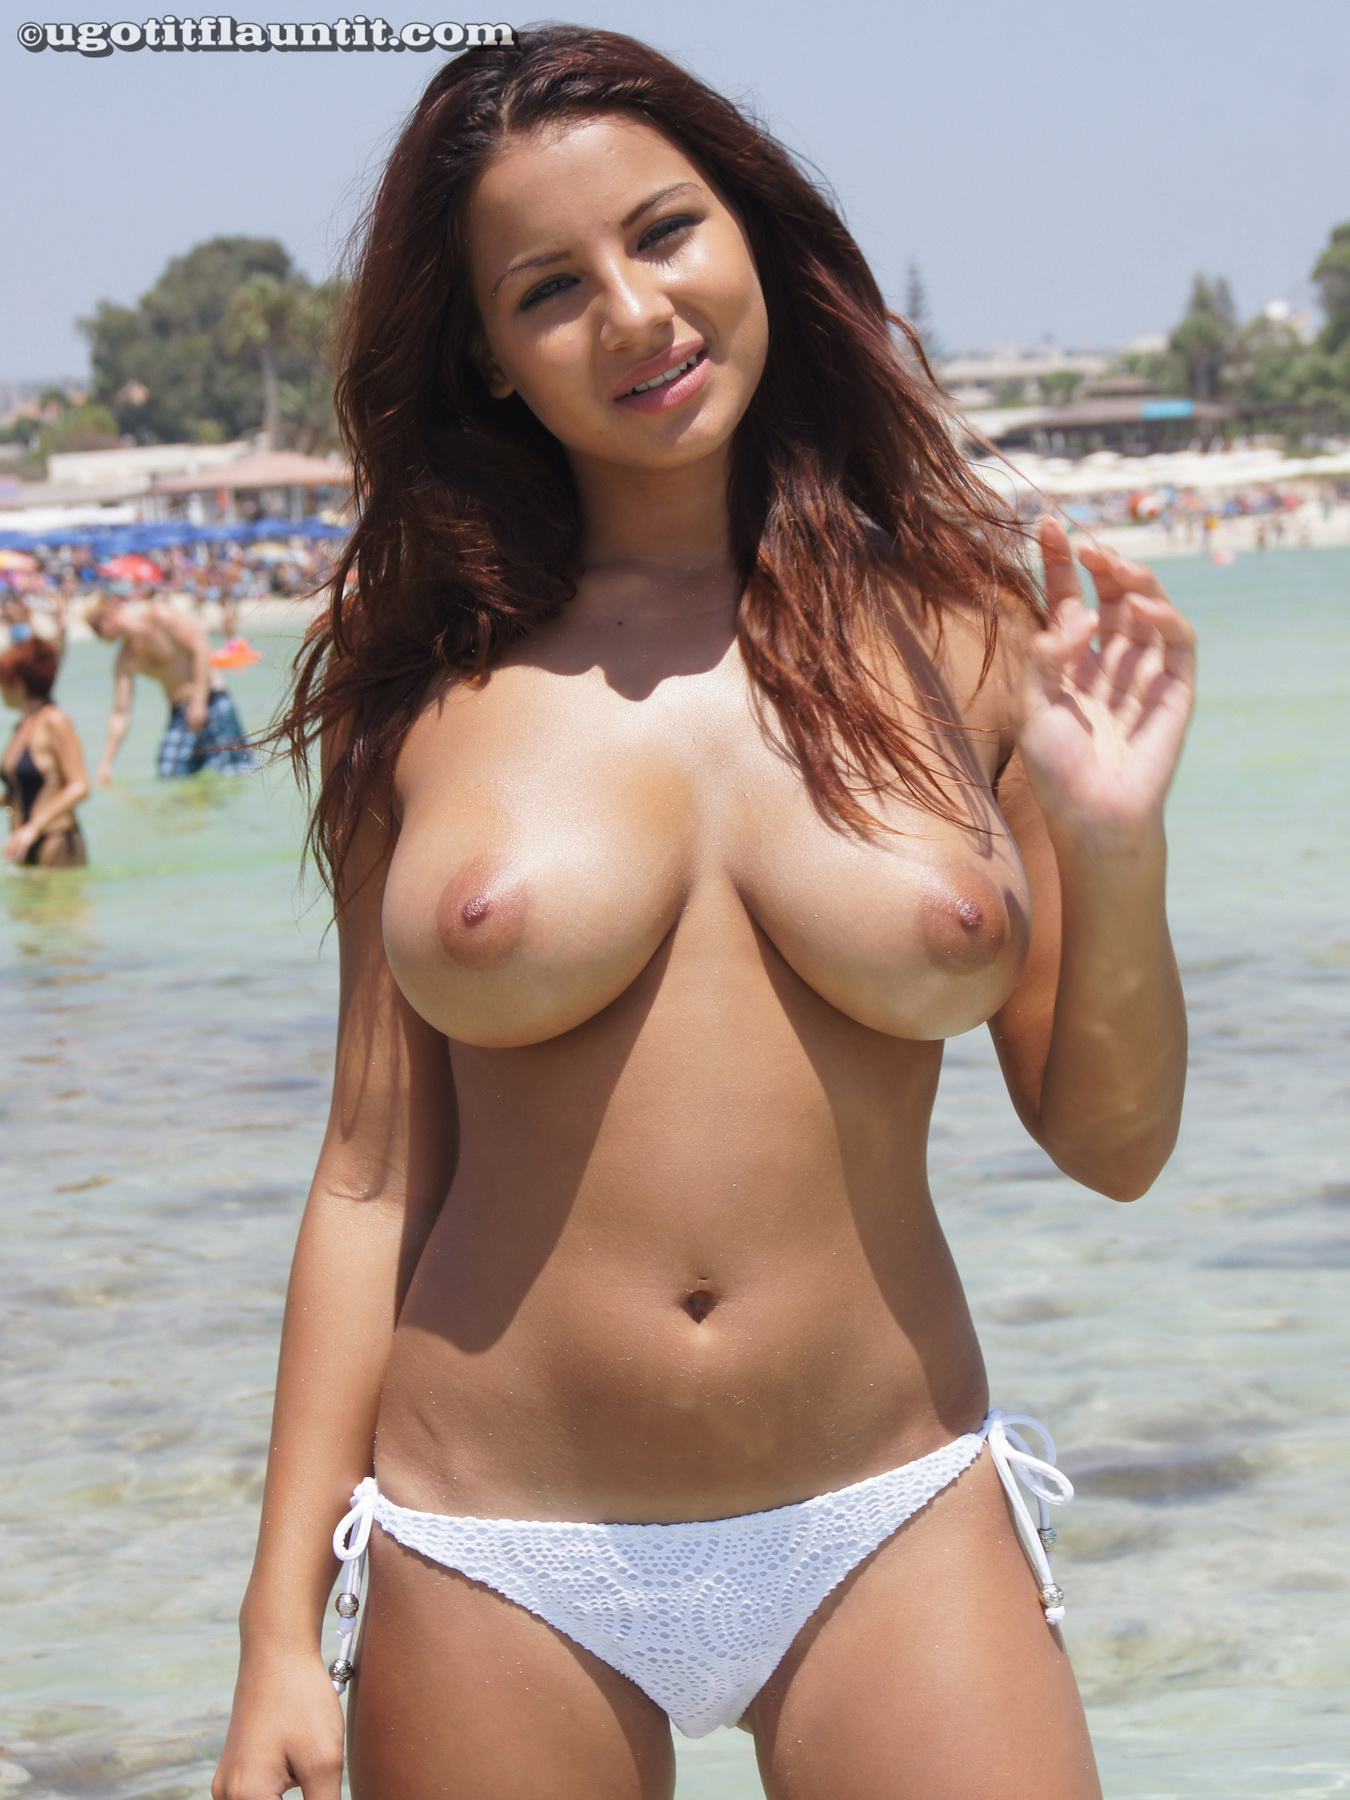 Big boobs on sexy topless amateur beach babe | Nude ...